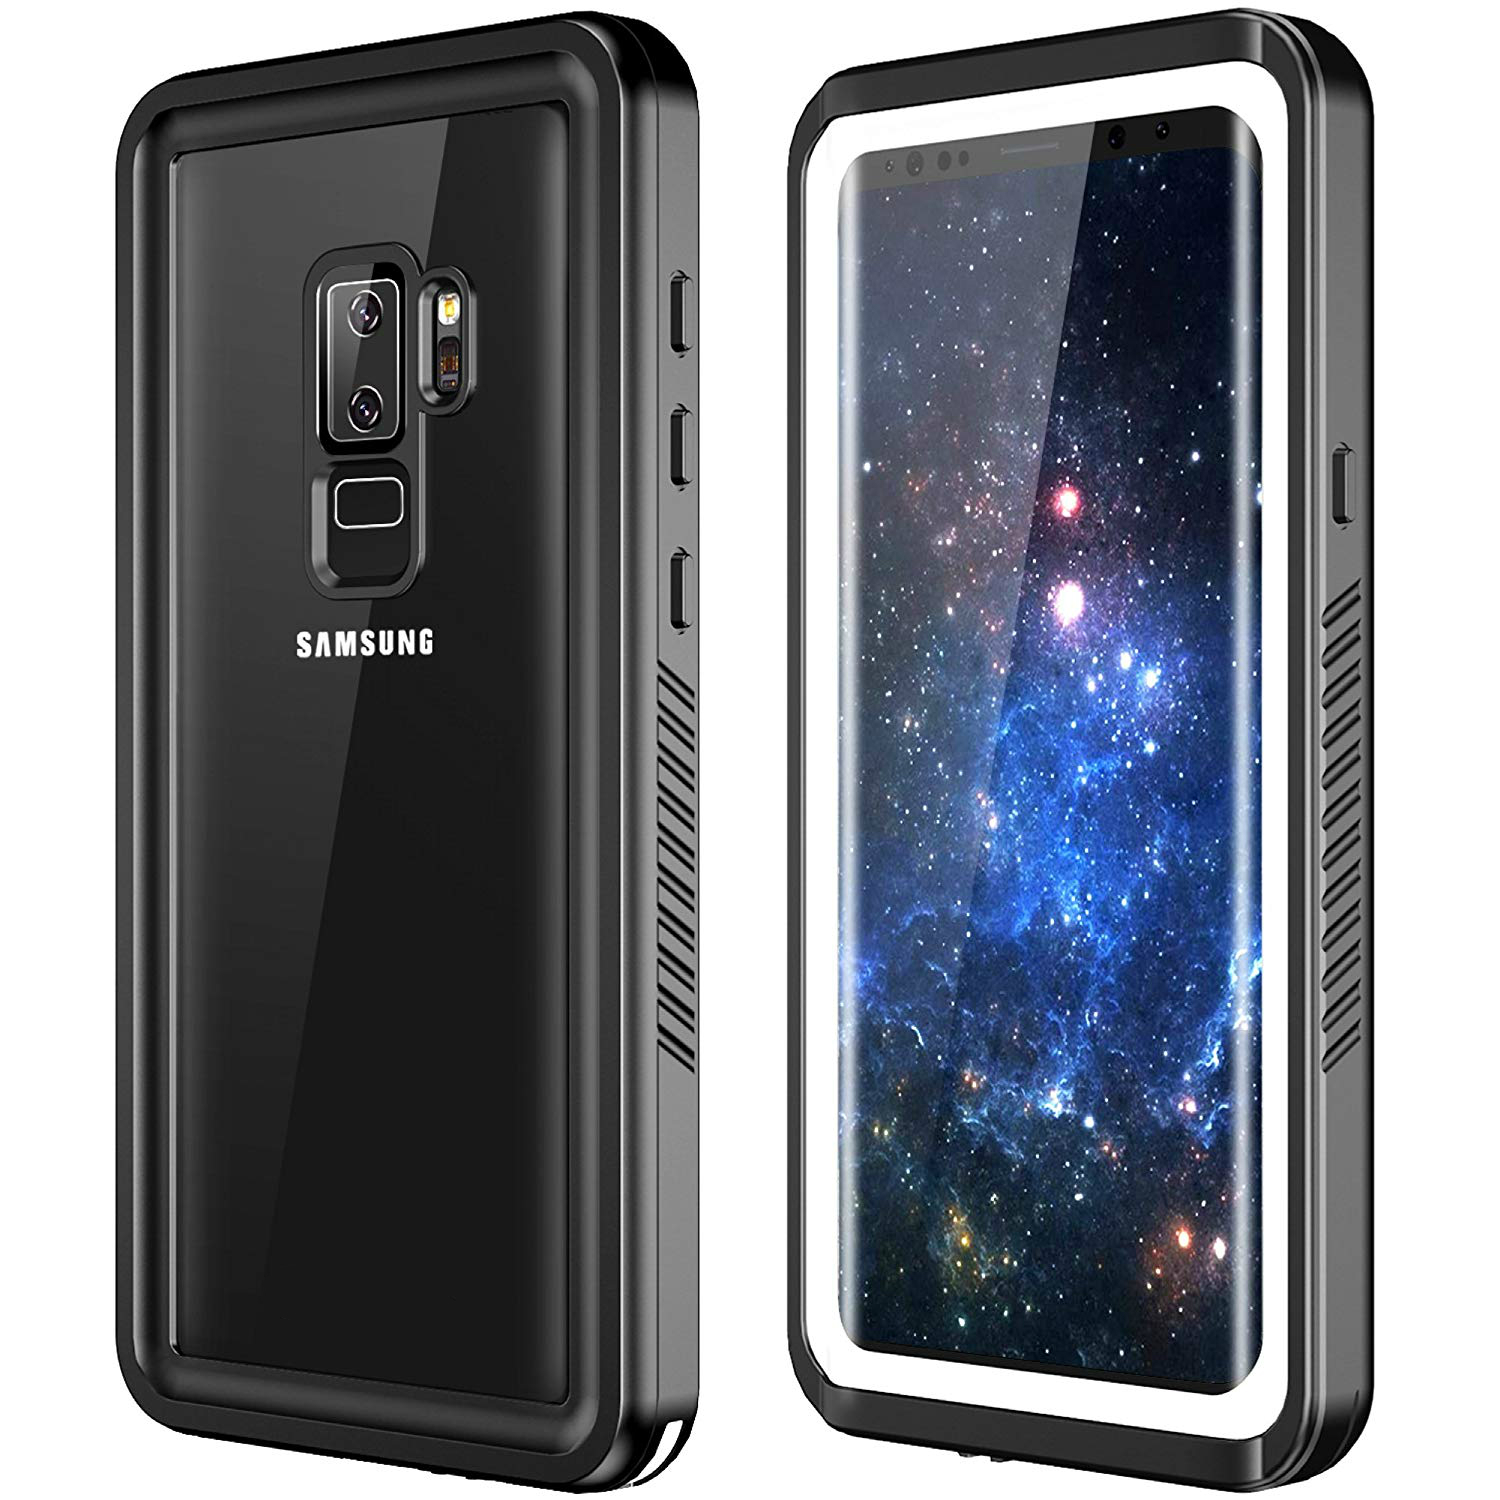 huge discount f3b59 2ce98 For Samsung Galaxy S9 Plus Waterproof Case 2018 Amazon New Arrival Ip68  Waterproof Shockproof Phone Case For Samsung S9 Plus - Buy For Samsung S9  Plus ...